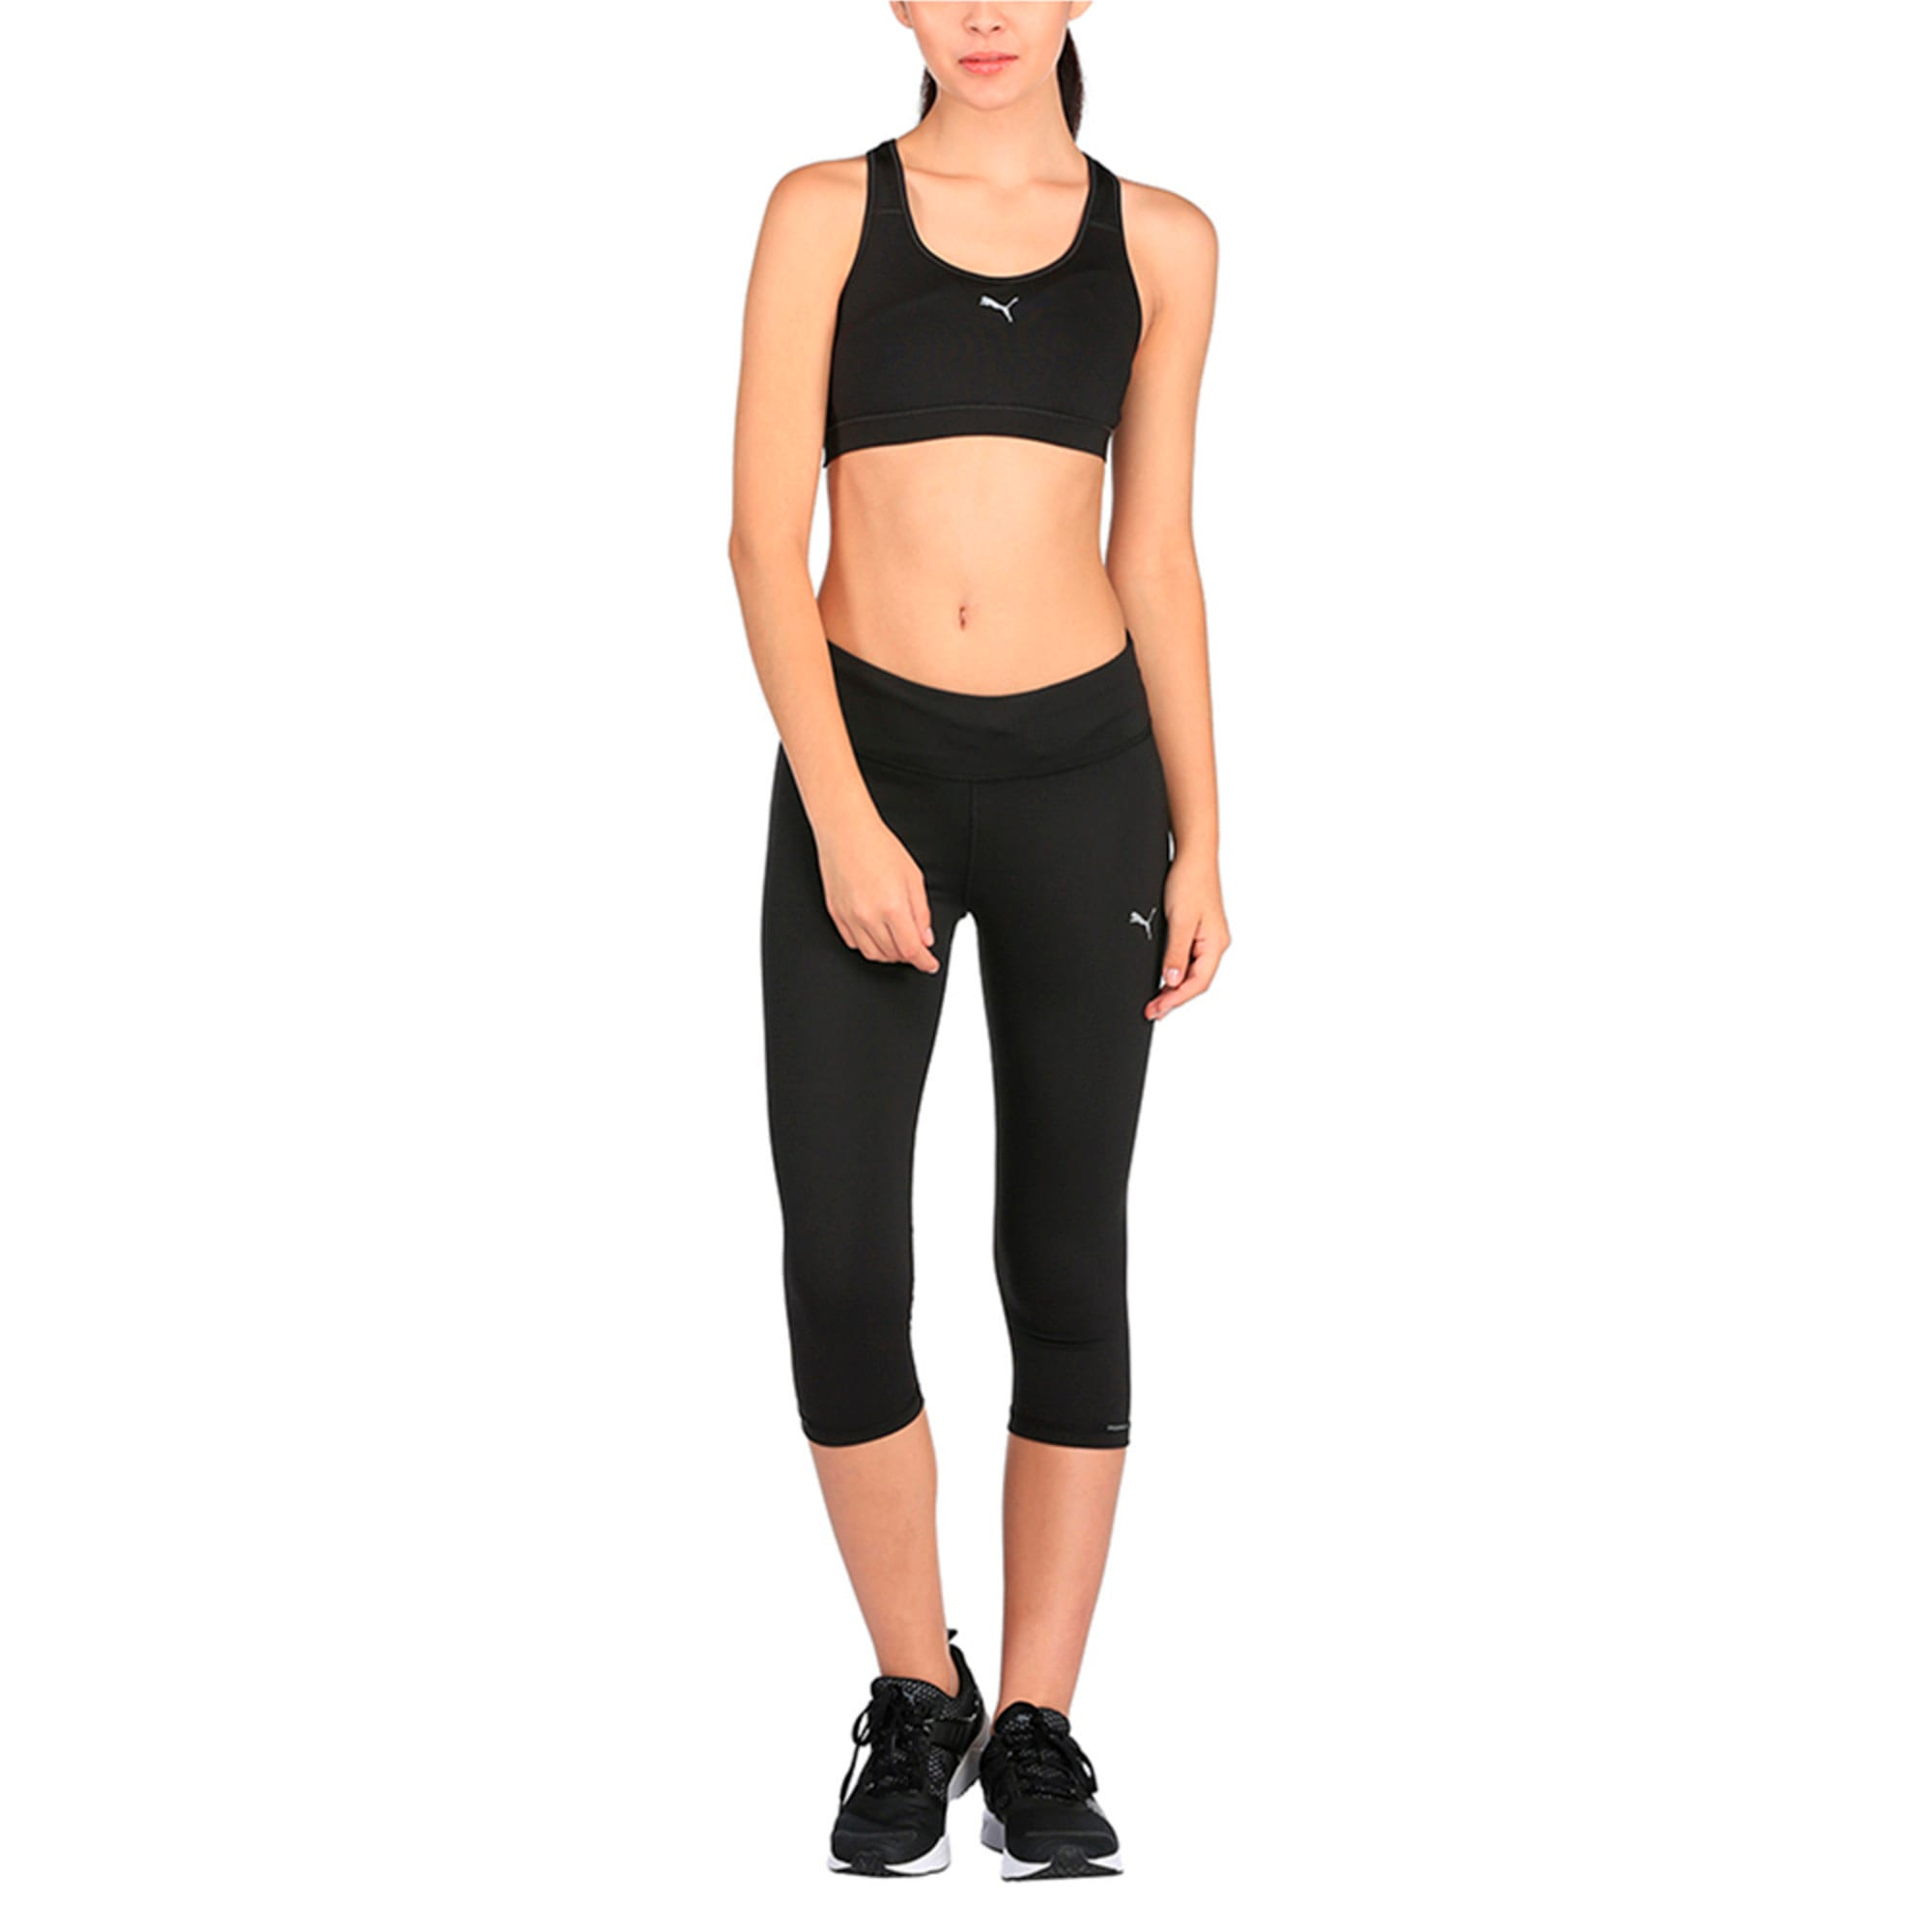 Thumbnail 1 of Running Women's 3/4 Tights, Puma Black, medium-IND